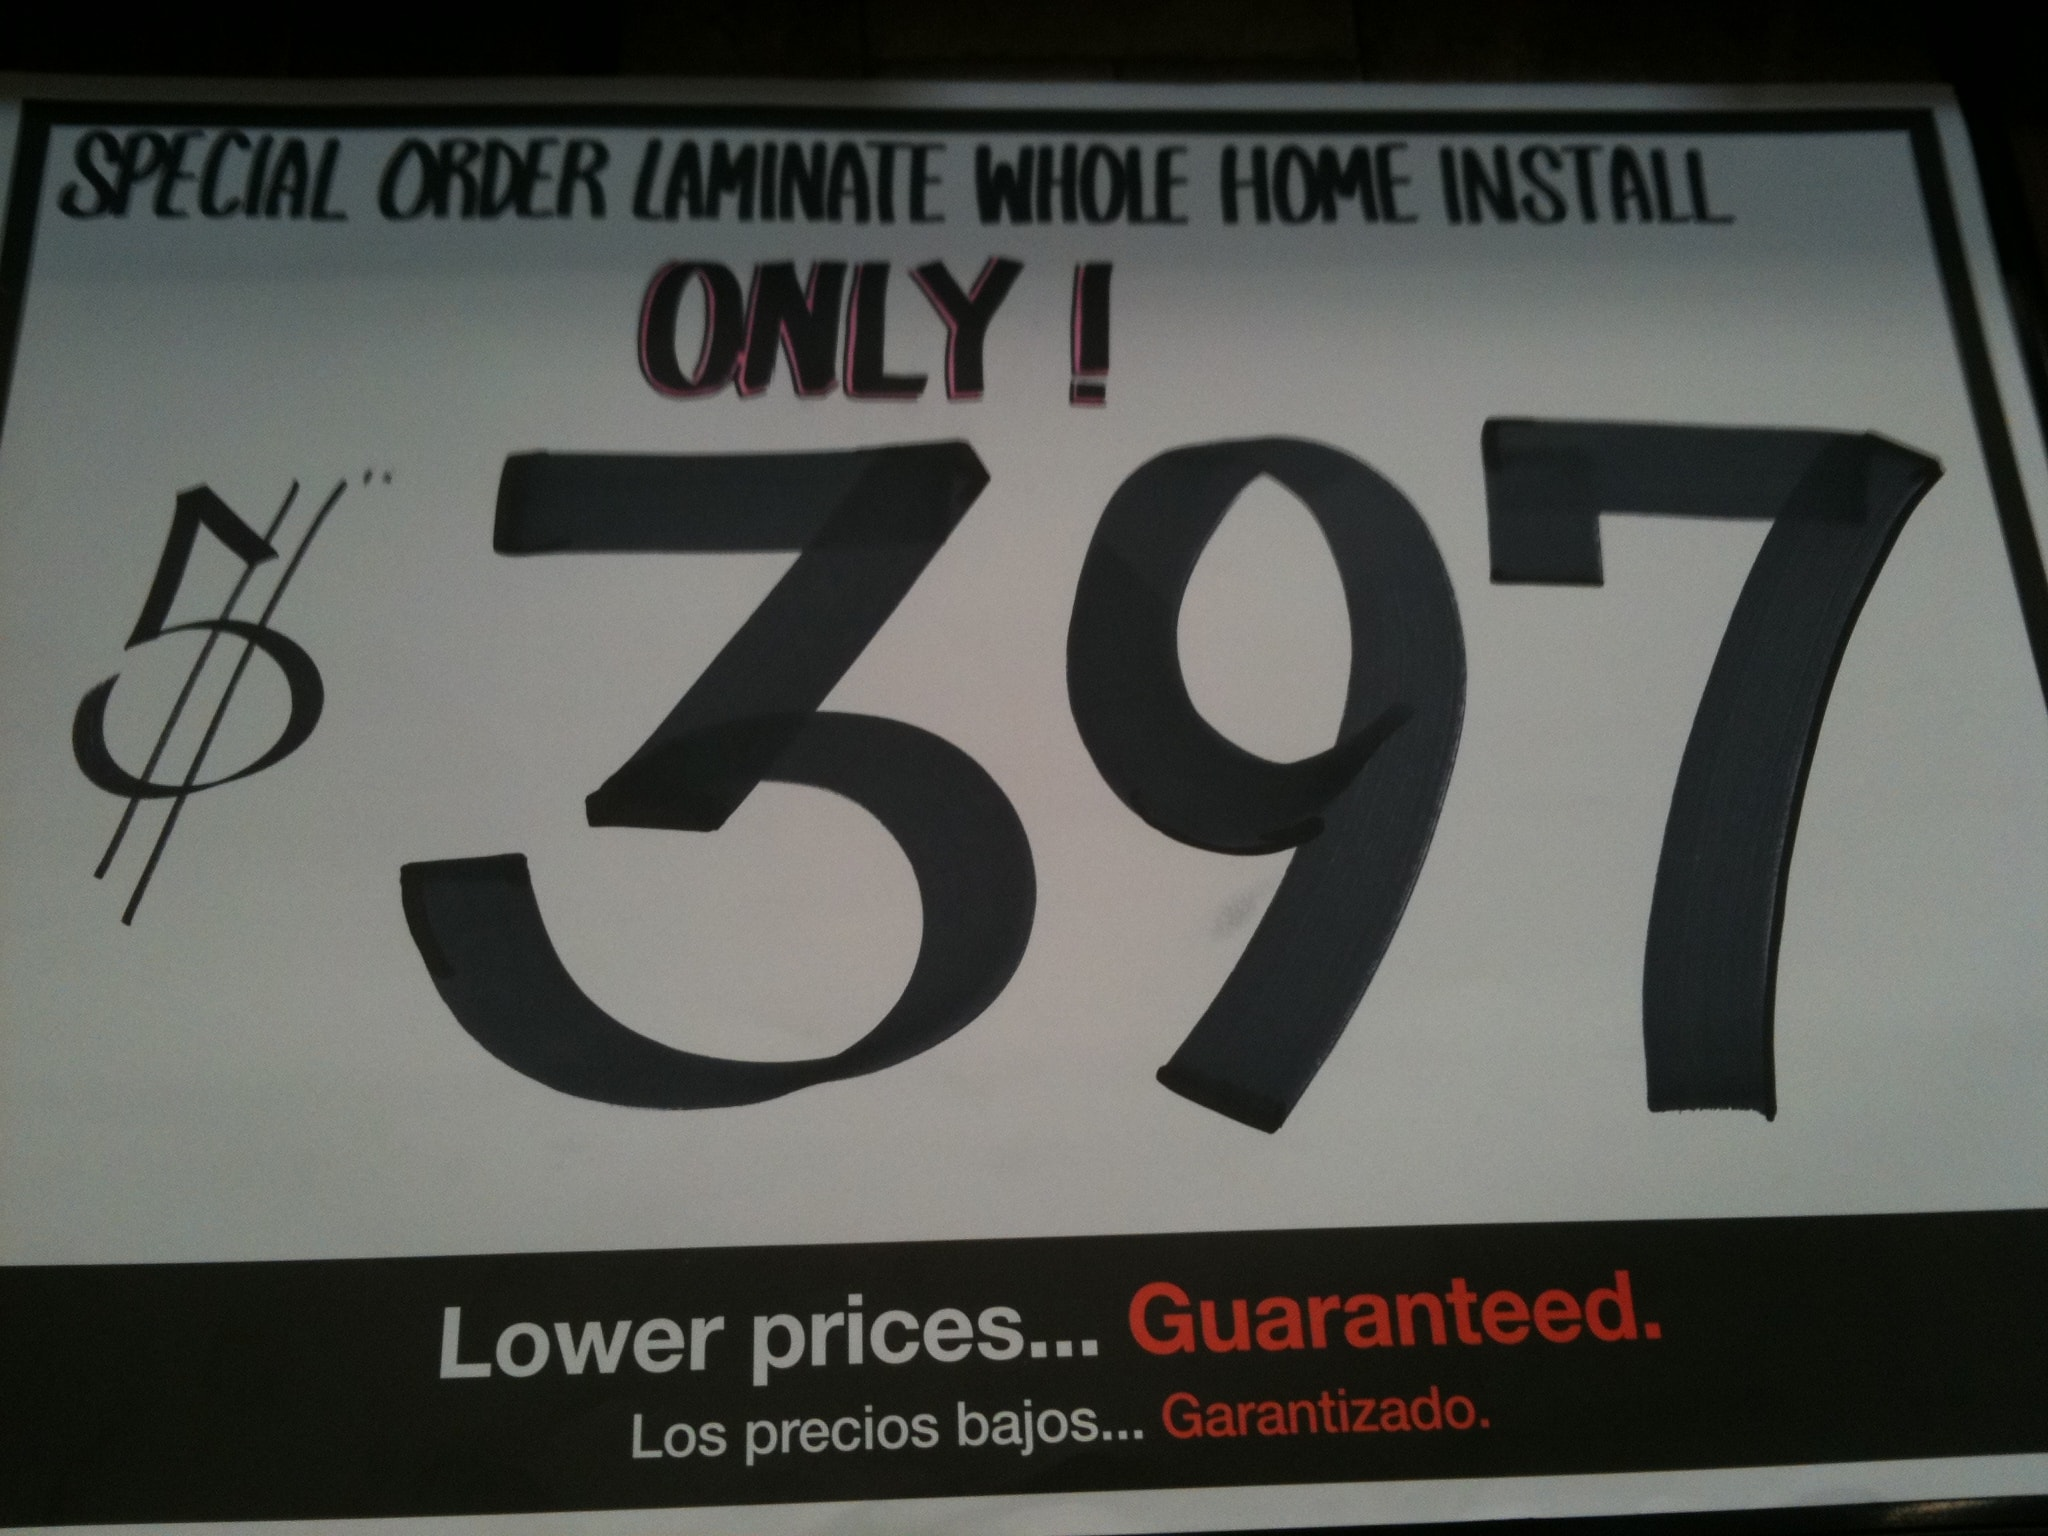 $397 Whole house laminate installation at Home Depot Slickdeals